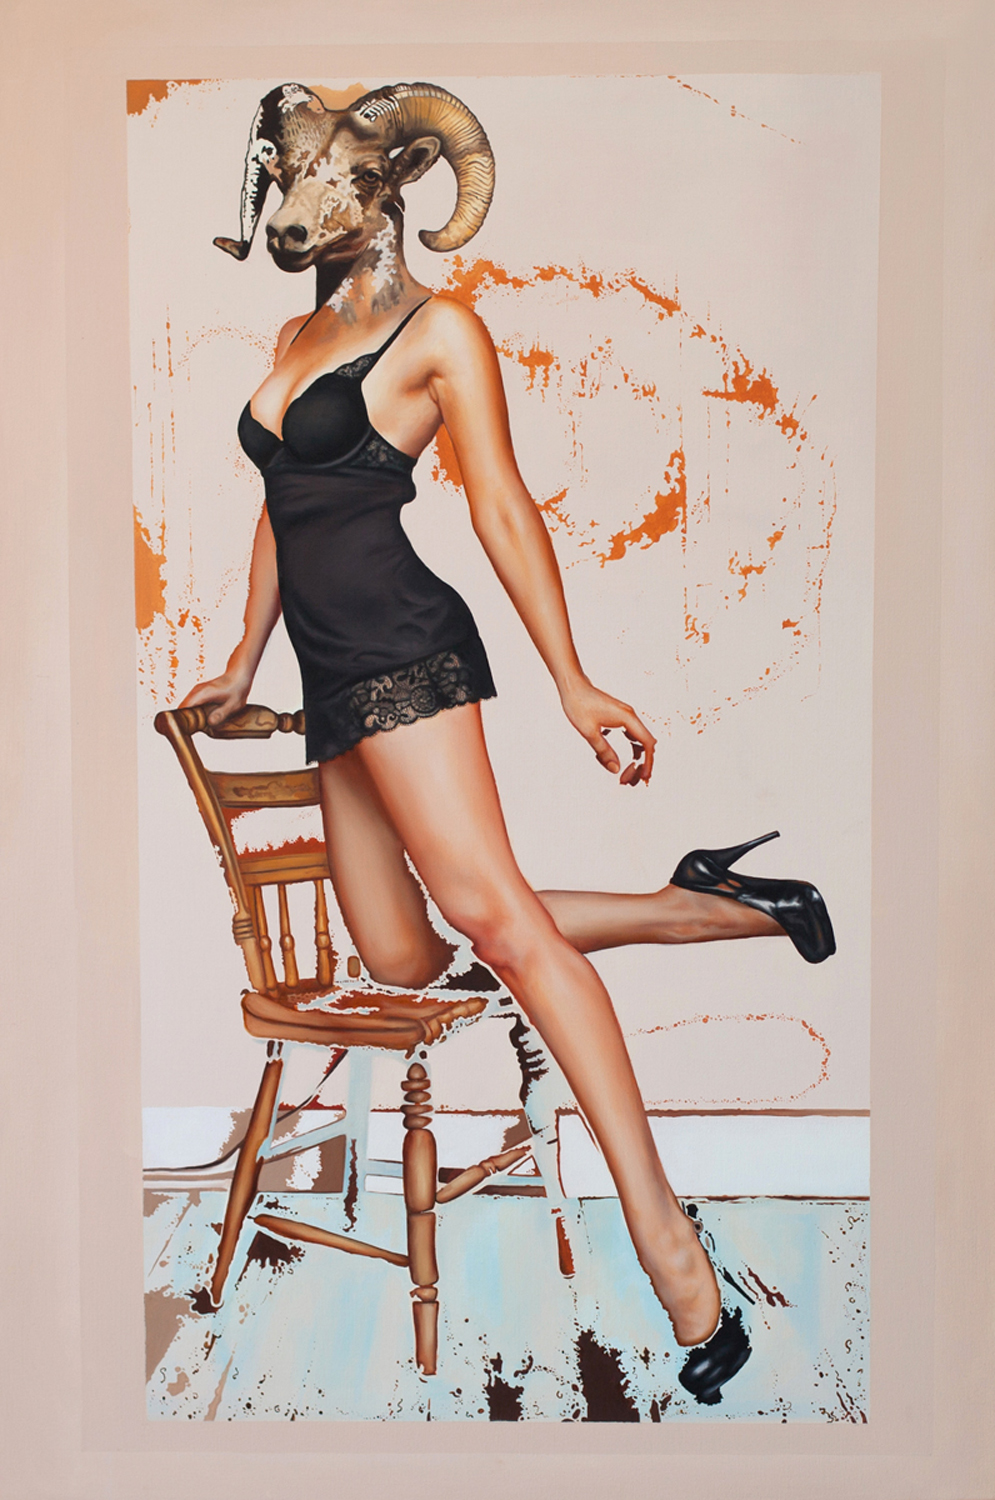 Contessa, 2012, oil on canvas, 32 x 48""